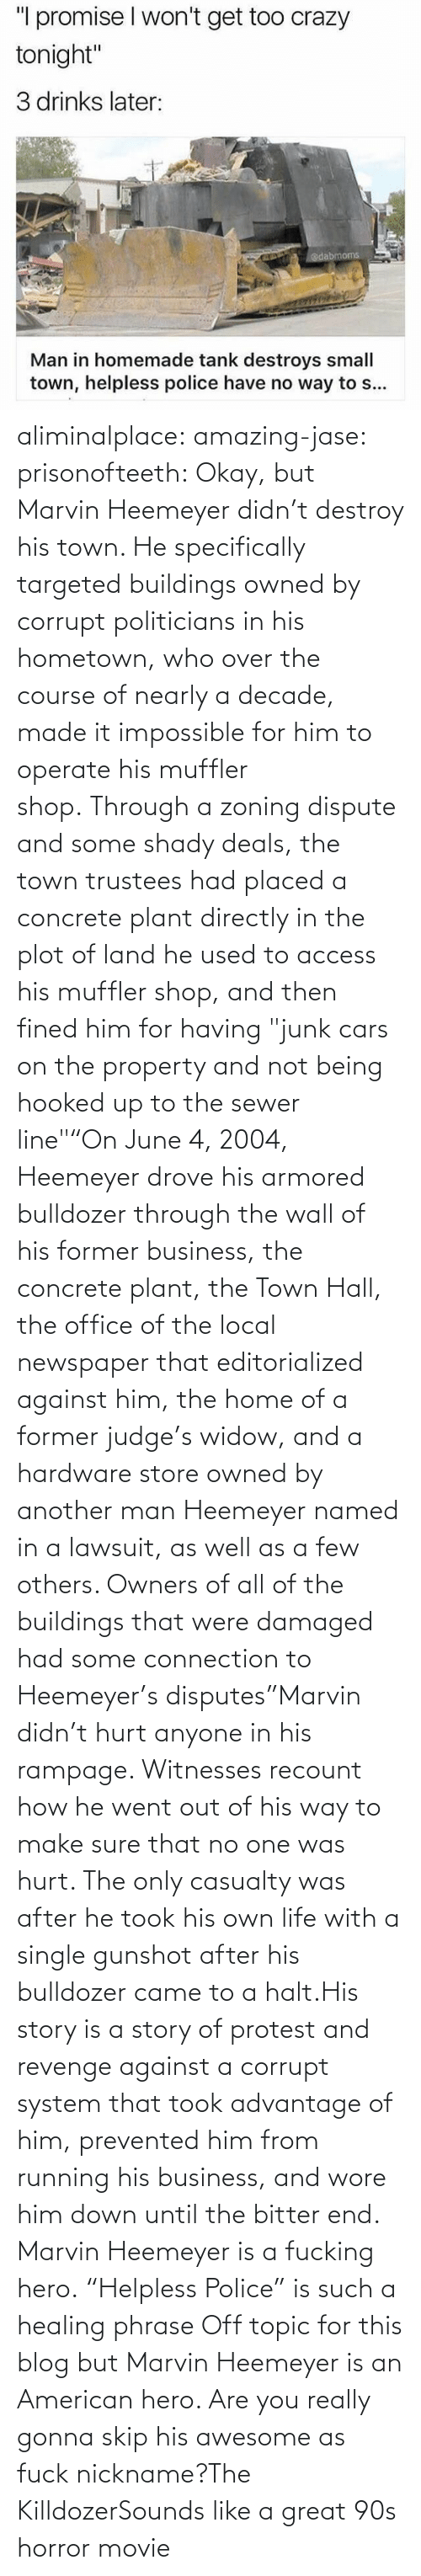 "armored: aliminalplace: amazing-jase:  prisonofteeth: Okay, but Marvin Heemeyer didn't destroy his town. He specifically targeted buildings owned by corrupt politicians in his hometown, who over the course of nearly a decade, made it impossible for him to operate his muffler shop. Through a zoning dispute and some shady deals, the town trustees had placed a concrete plant directly in the plot of land he used to access his muffler shop, and then fined him for having ""junk cars on the property and not being hooked up to the sewer line""""On June 4, 2004, Heemeyer drove his armored bulldozer through the wall of his former business, the concrete plant, the Town Hall, the office of the local newspaper that editorialized against him, the home of a former judge's widow, and a hardware store owned by another man Heemeyer named in a lawsuit, as well as a few others. Owners of all of the buildings that were damaged had some connection to Heemeyer's disputes""Marvin didn't hurt anyone in his rampage. Witnesses recount how he went out of his way to make sure that no one was hurt. The only casualty was after he took his own life with a single gunshot after his bulldozer came to a halt.His story is a story of protest and revenge against a corrupt system that took advantage of him, prevented him from running his business, and wore him down until the bitter end. Marvin Heemeyer is a fucking hero. ""Helpless Police"" is such a healing phrase    Off topic for this blog but Marvin Heemeyer is an American hero.     Are you really gonna skip his awesome as fuck nickname?The KilldozerSounds like a great 90s horror movie"